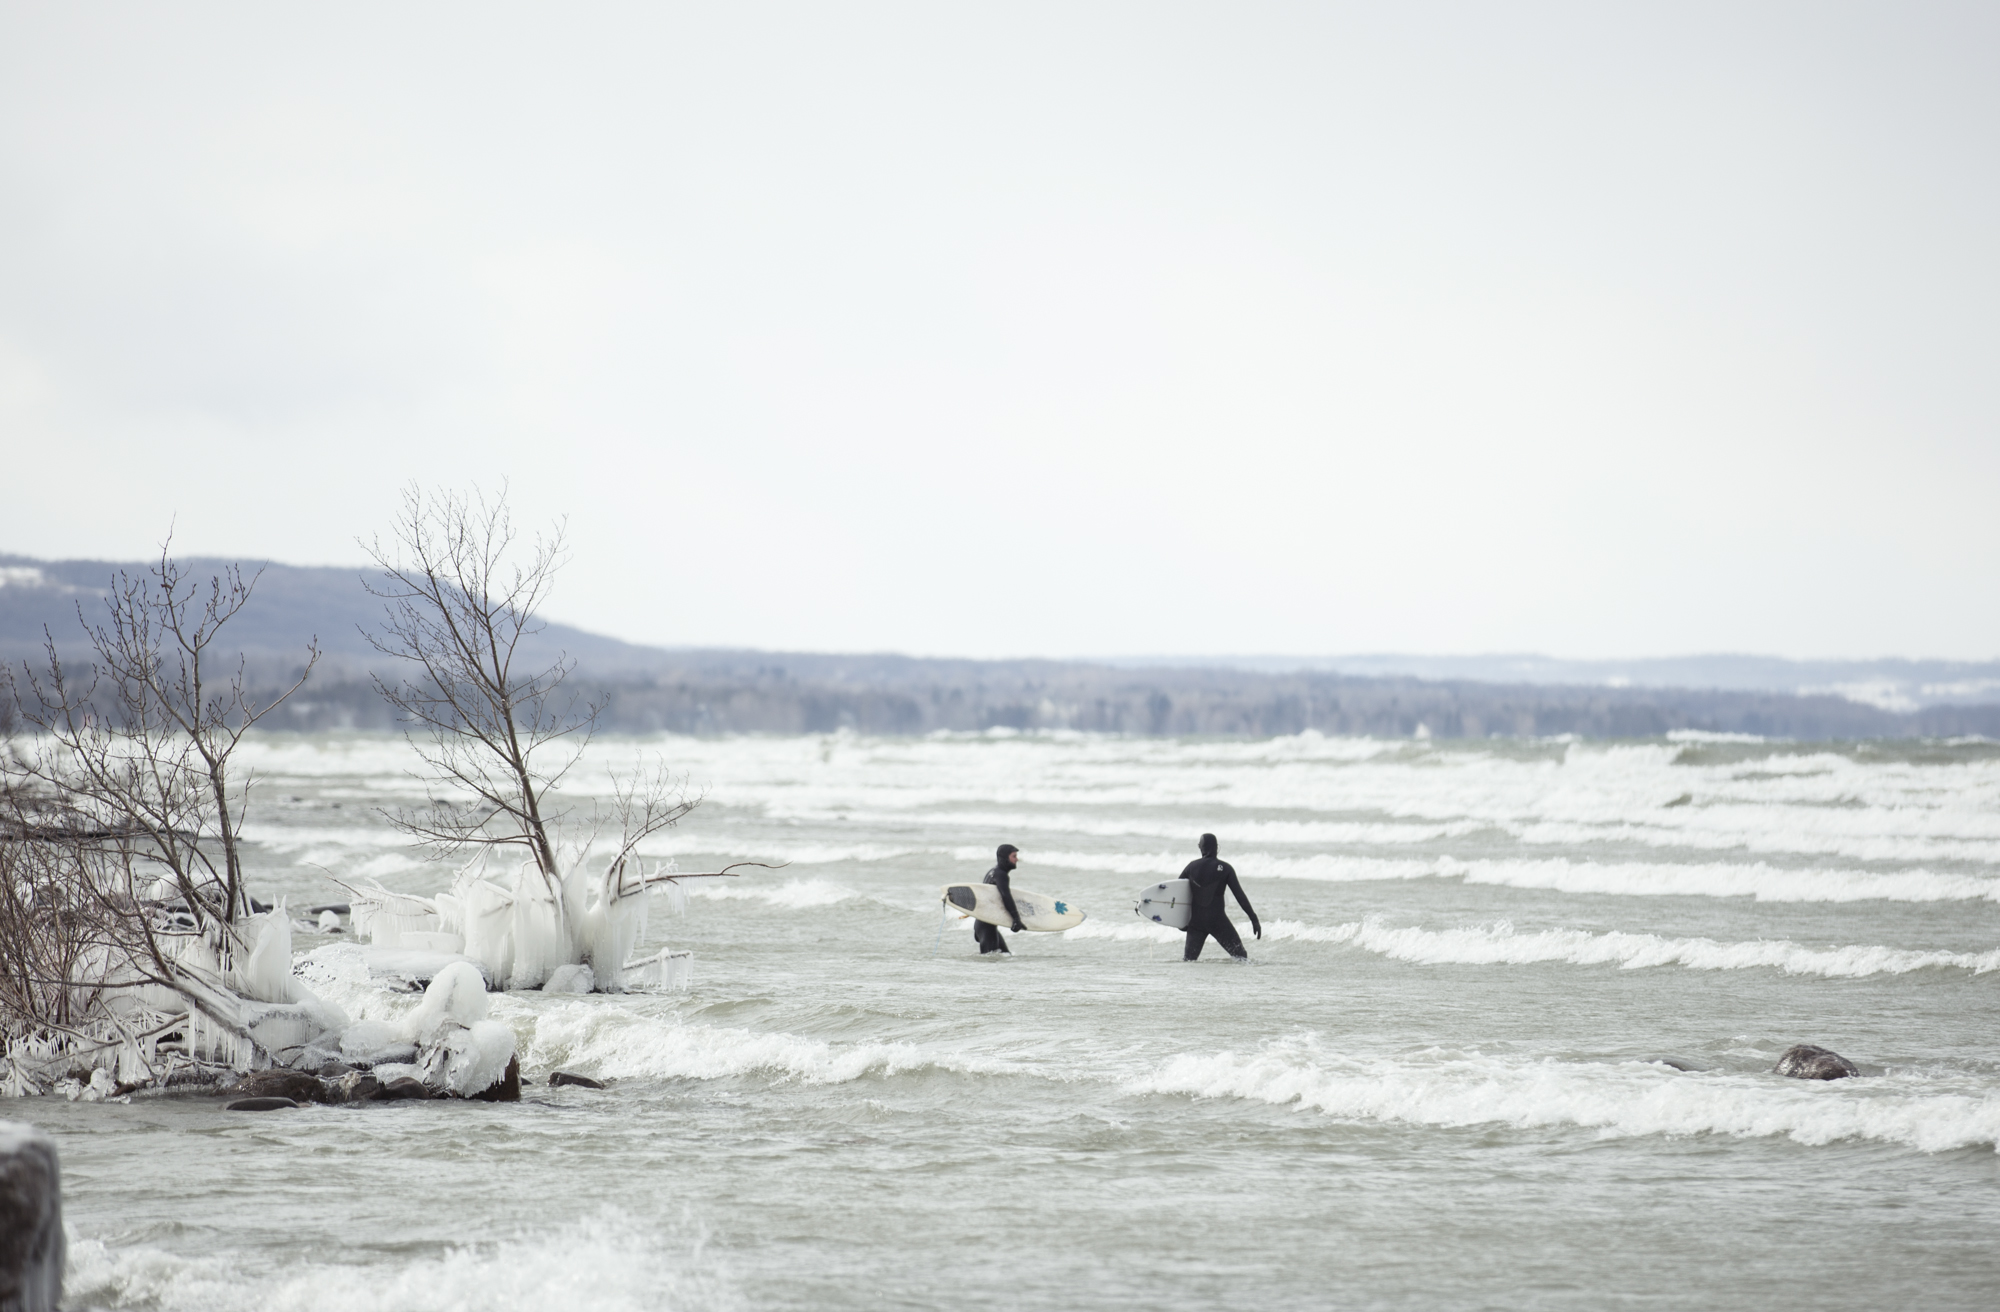 Surfing_the_Great_Lakes_Ontario_Alexandra_Coté_Durrer4.jpg